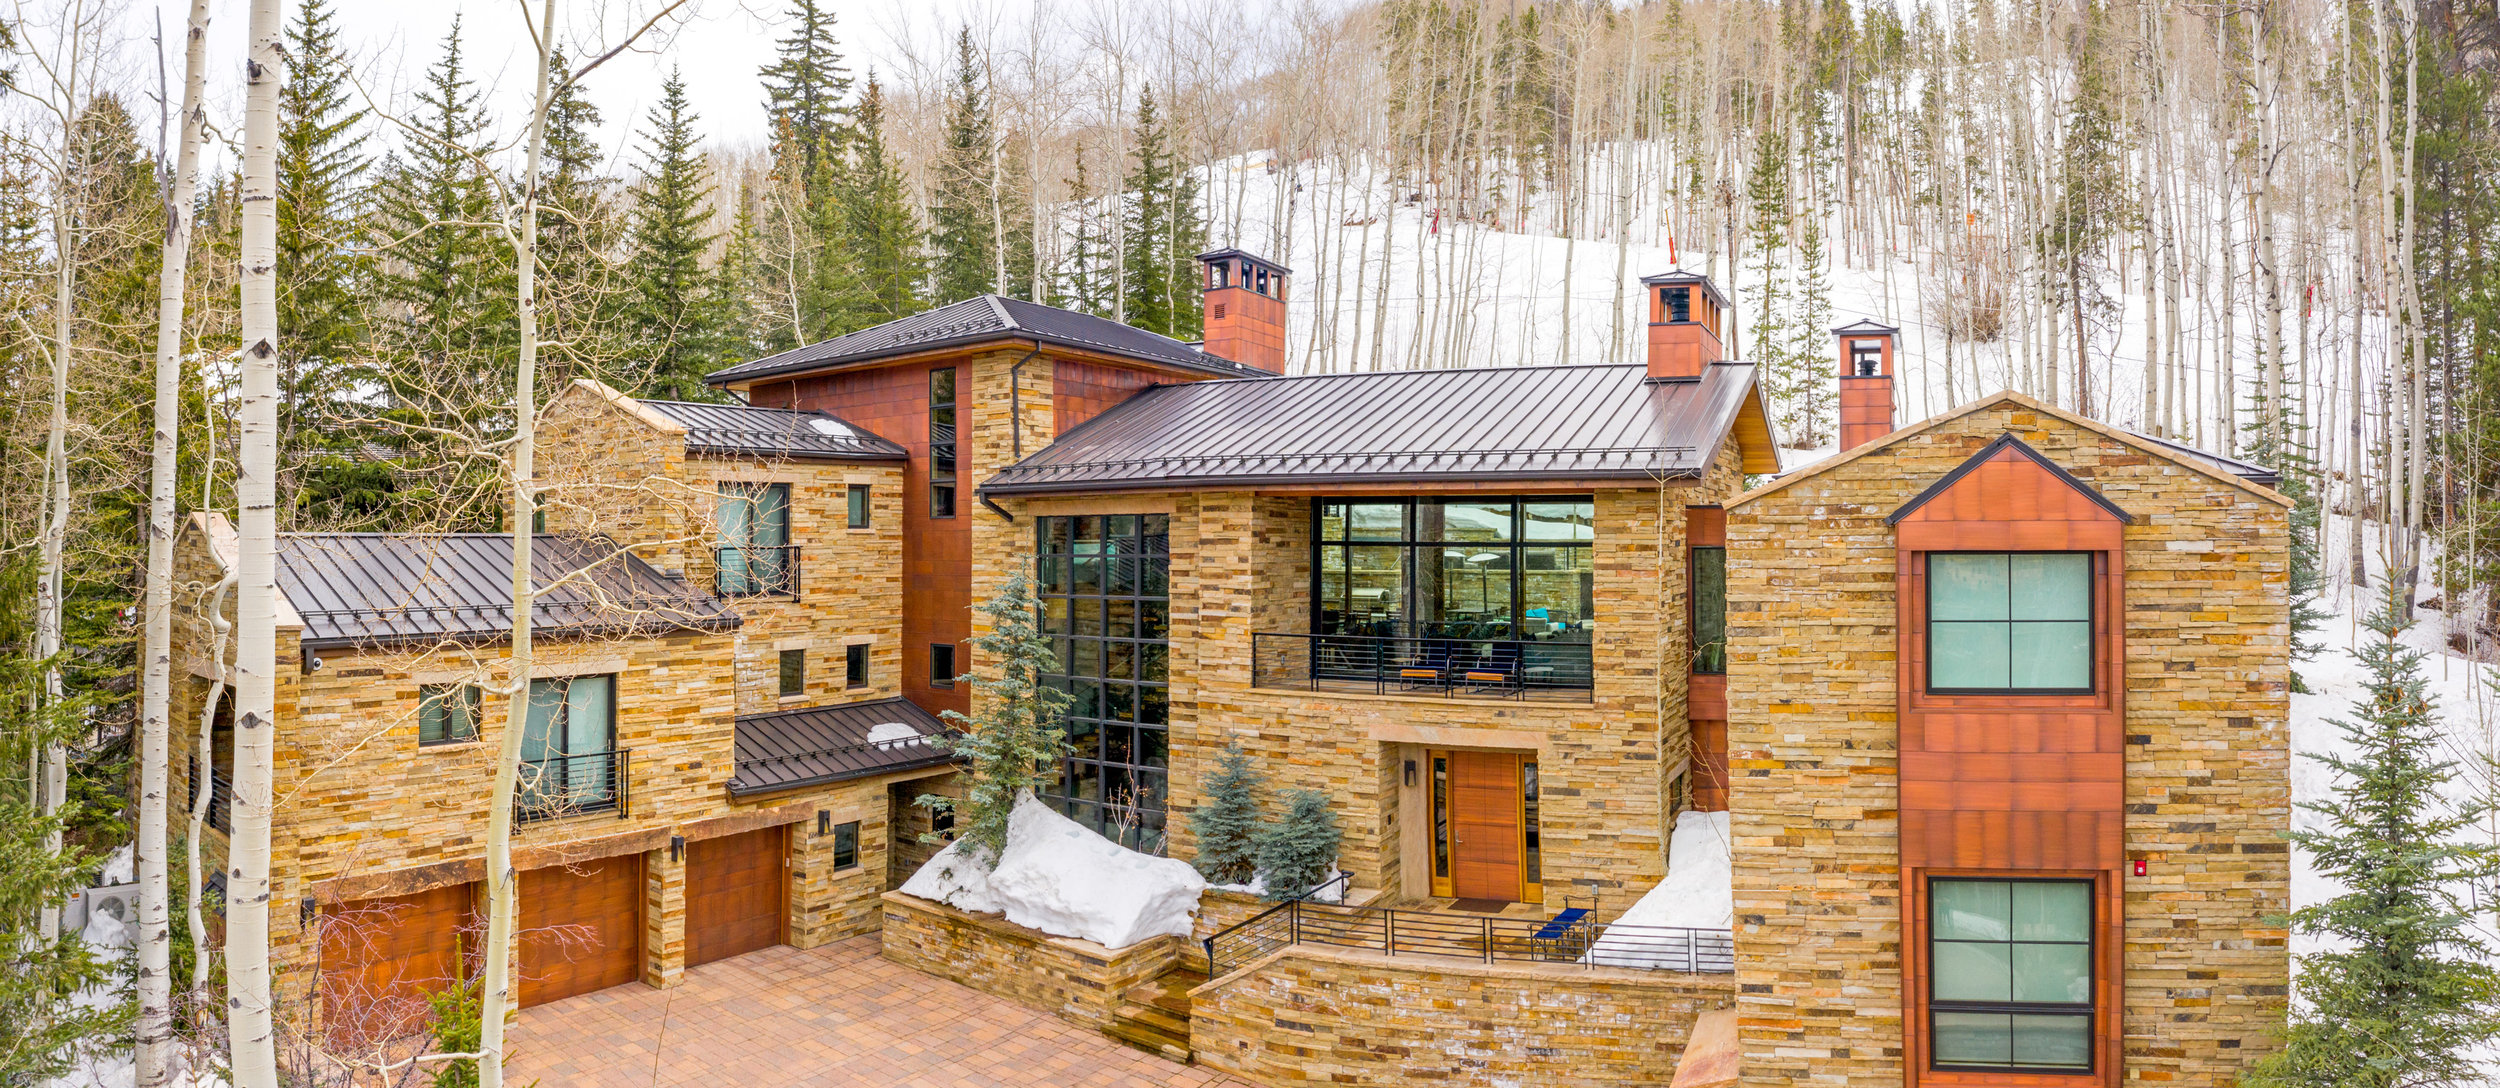 13-Vail-Real-Estate-Photographer-Toni-Axelrod.jpg